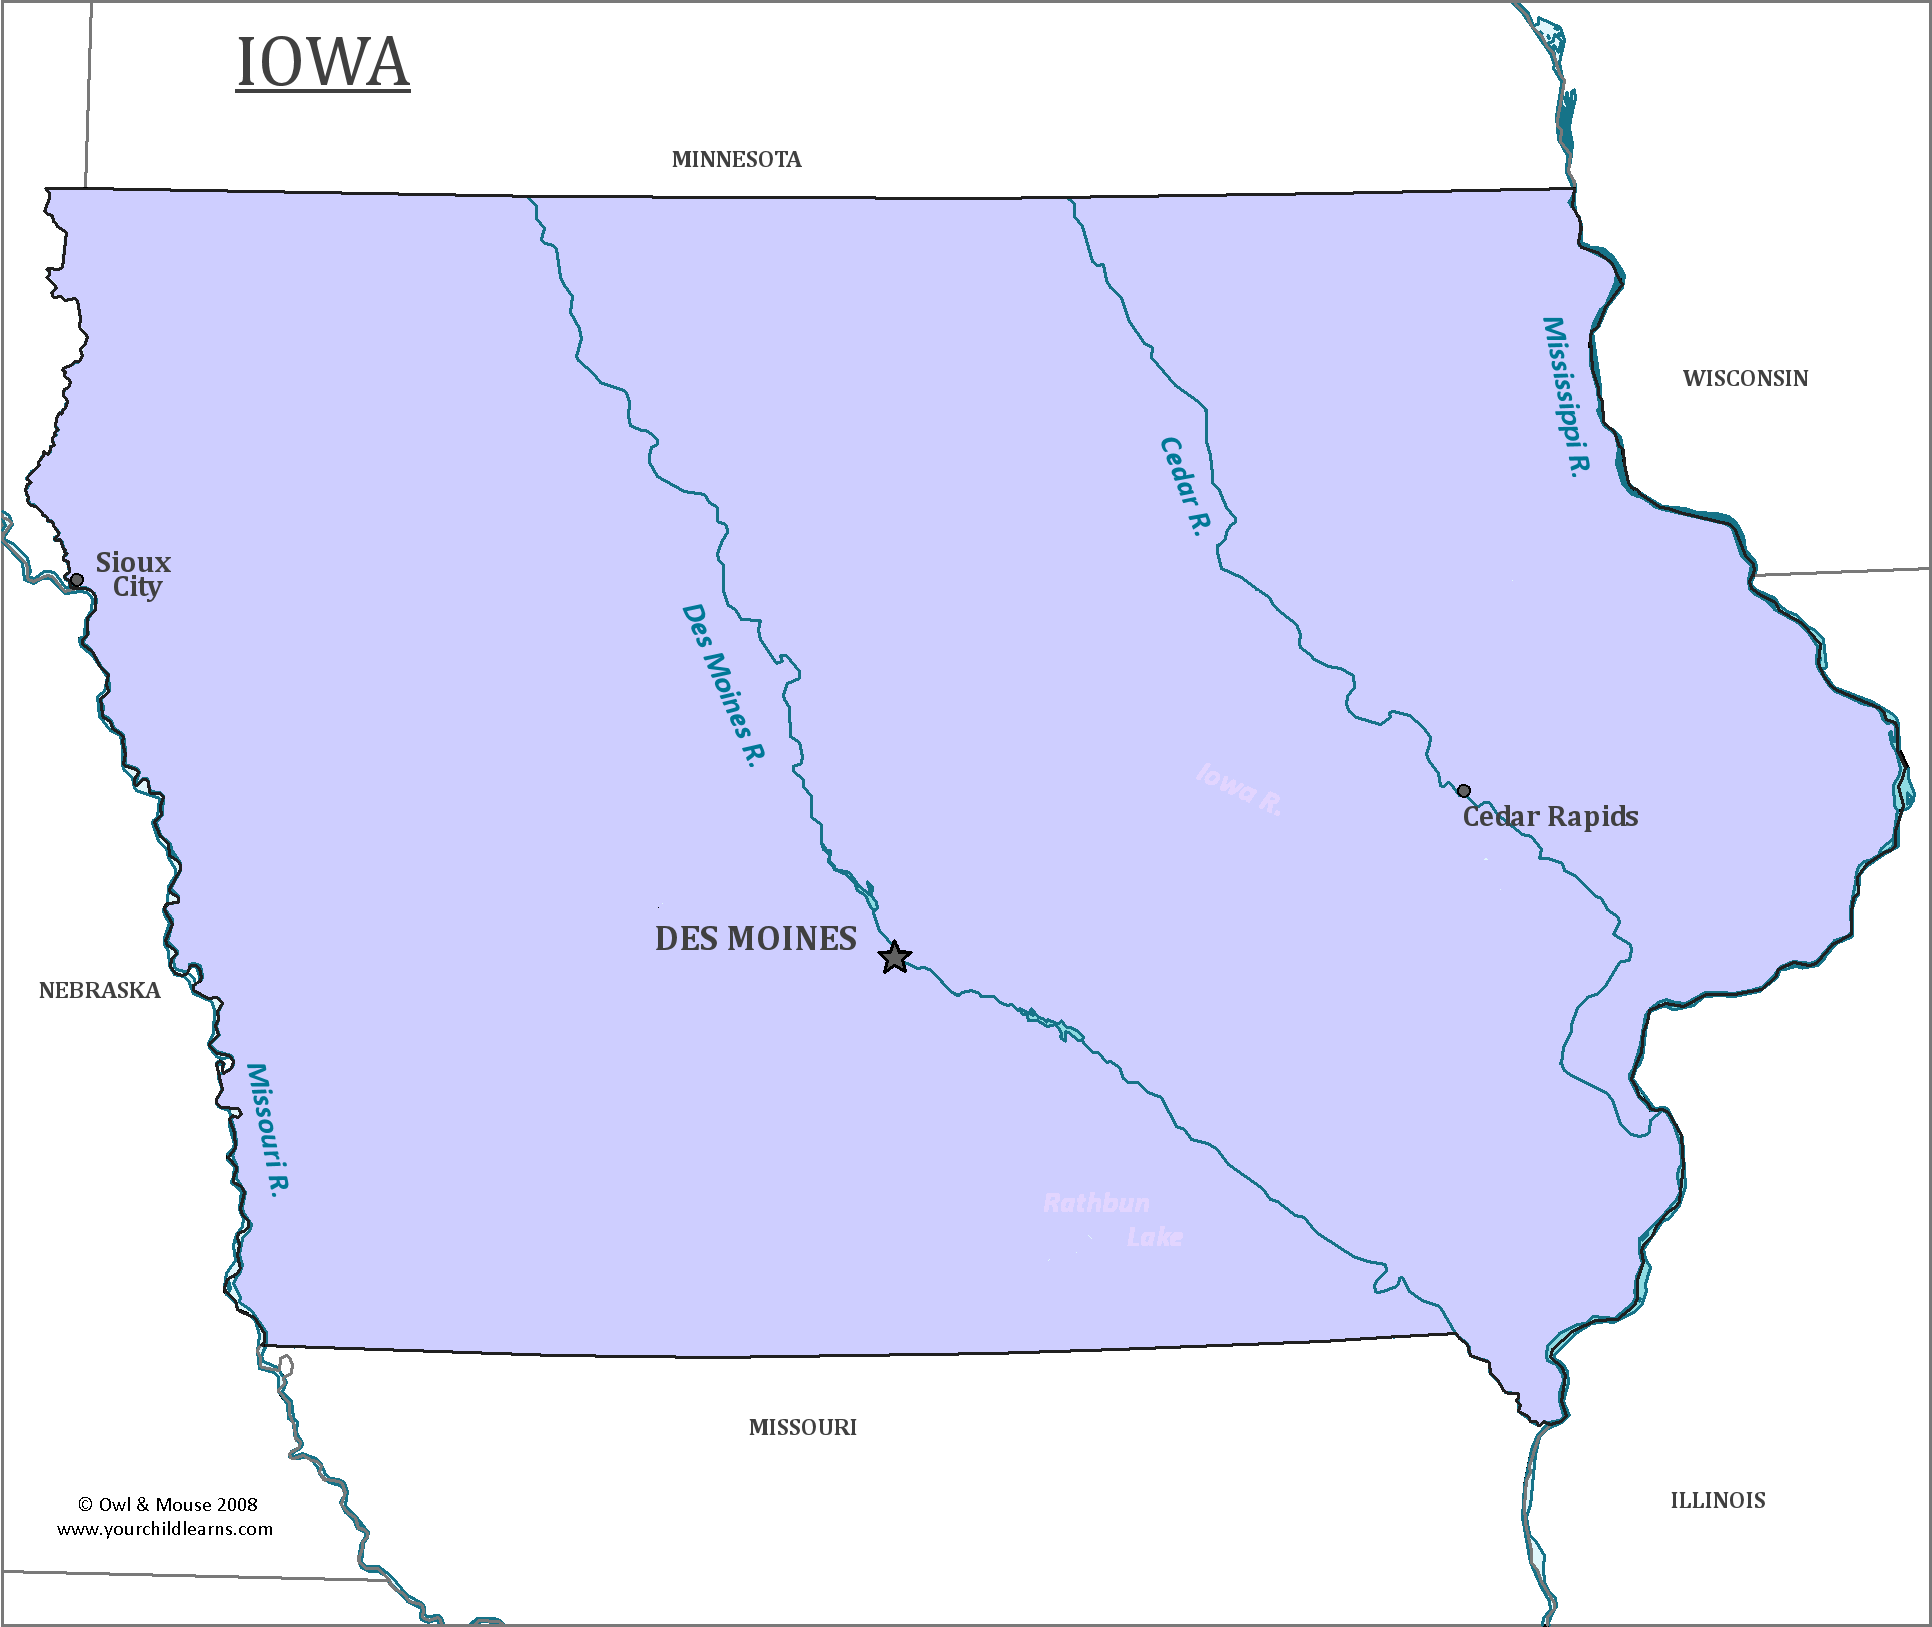 Iowa State Map Map Of Iowa And Information About The State - Map of iowa